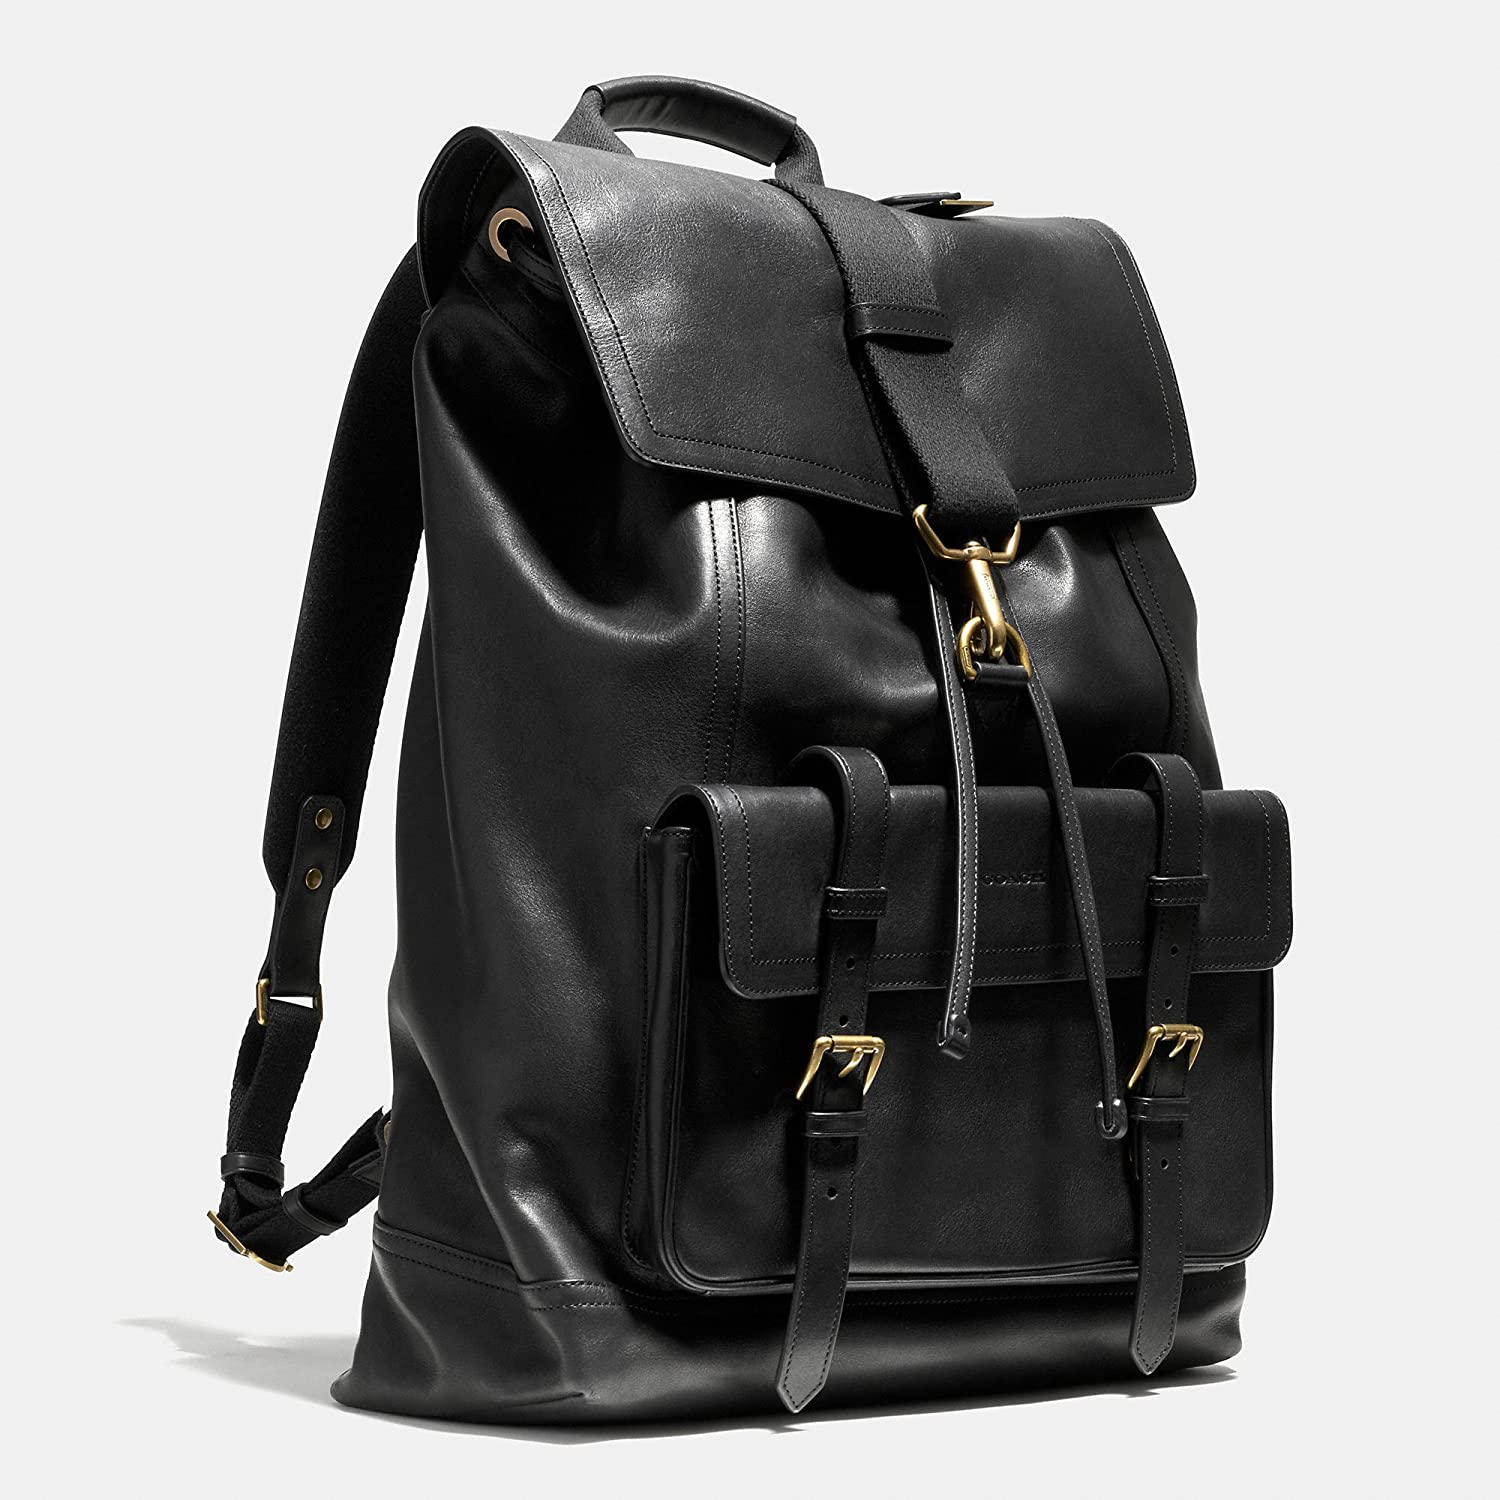 a9a97f9ea1d8 Amazon | (コーチ) COACH BLEECKER backpack in leather Fawn 革の子鹿でブリーカーバックパック  (並行輸入品) AURAKEE | タウンリュック・ビジネスリュック